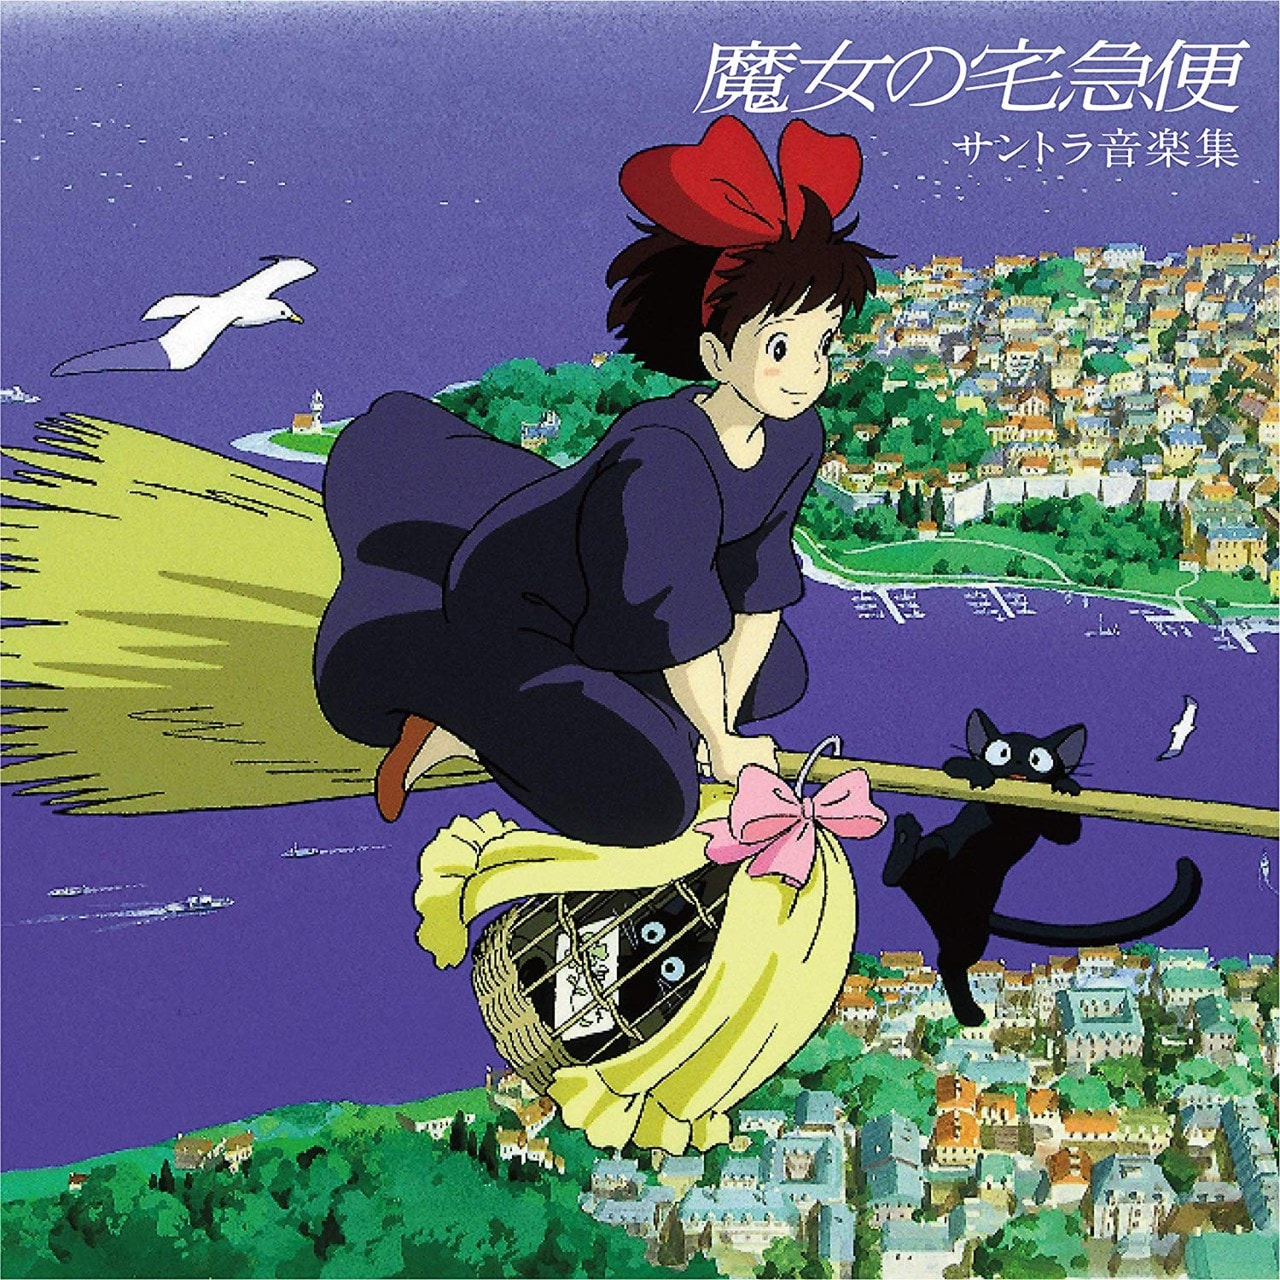 Kiki's Delivery Service: Soundtrack Music Collection - 1